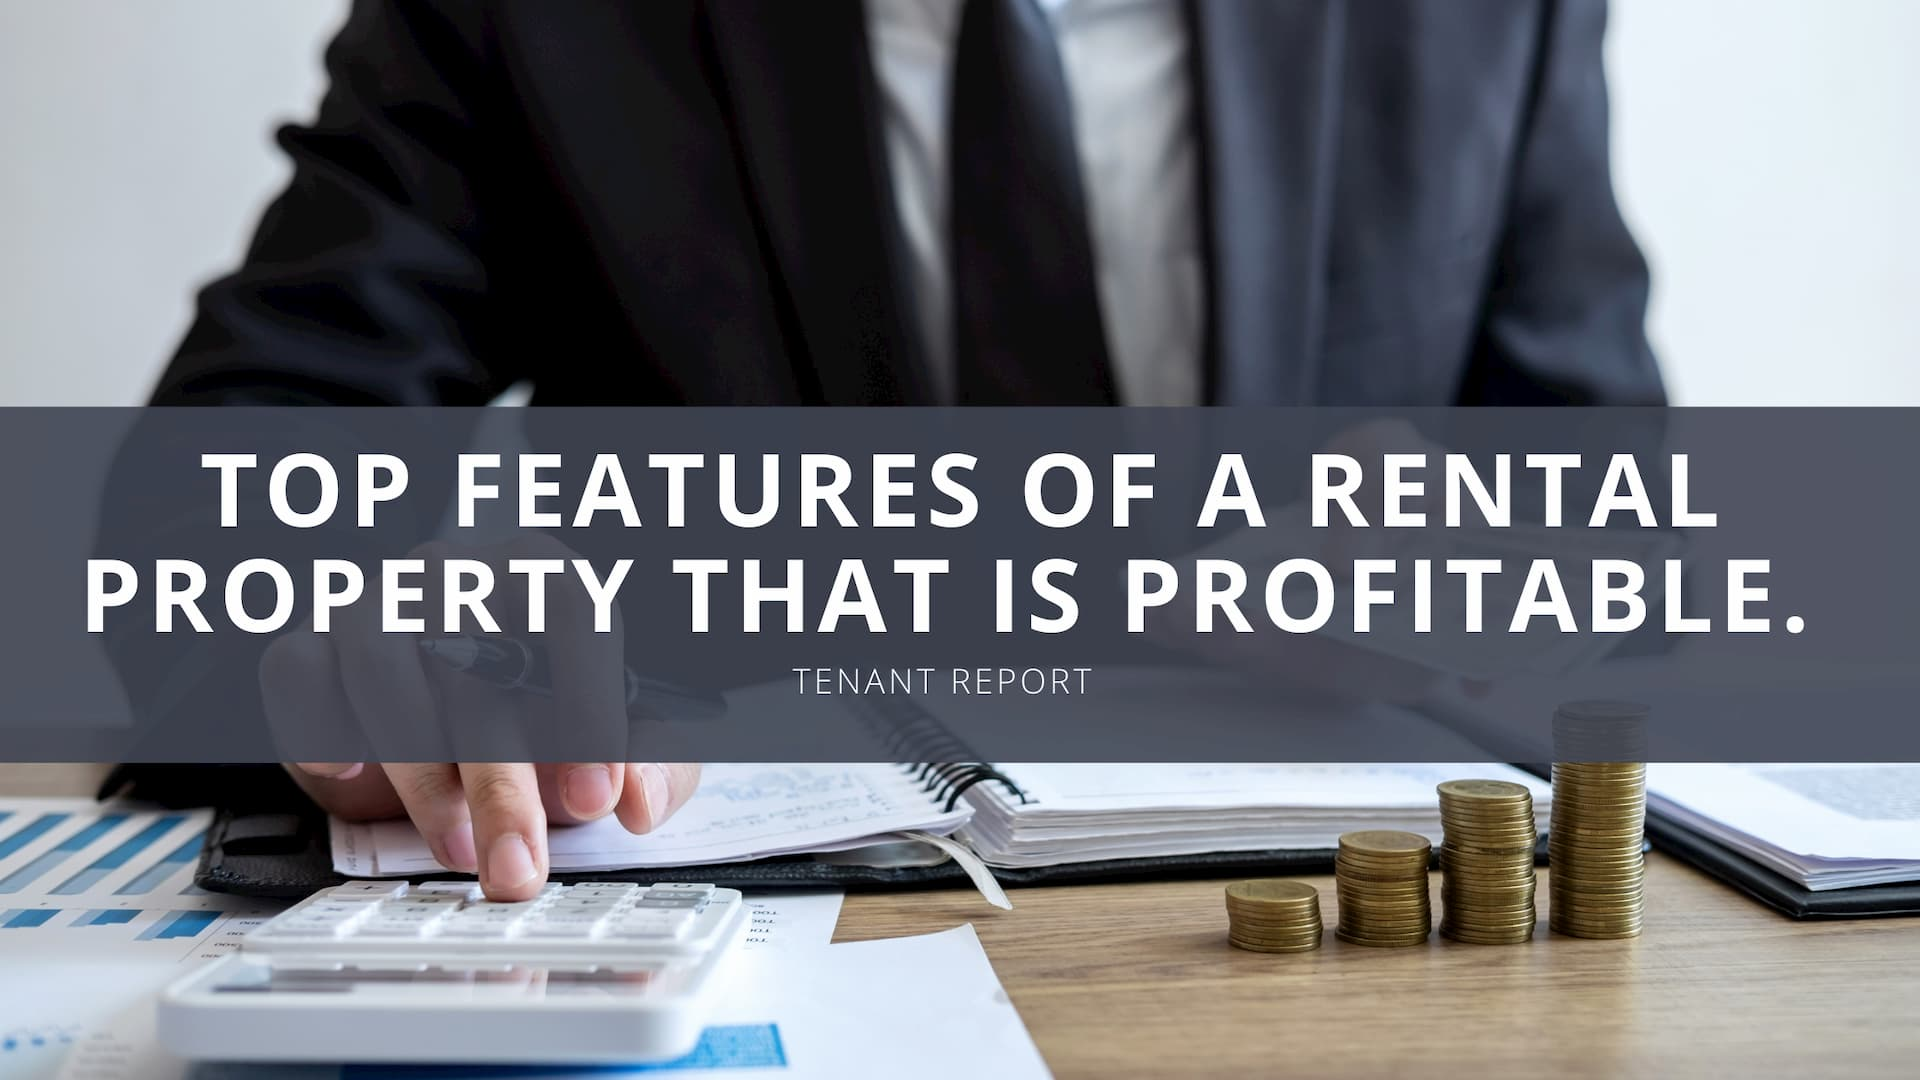 Tenant-Report-Top-Features-of-a-Rental-Property-that-is-Profitable